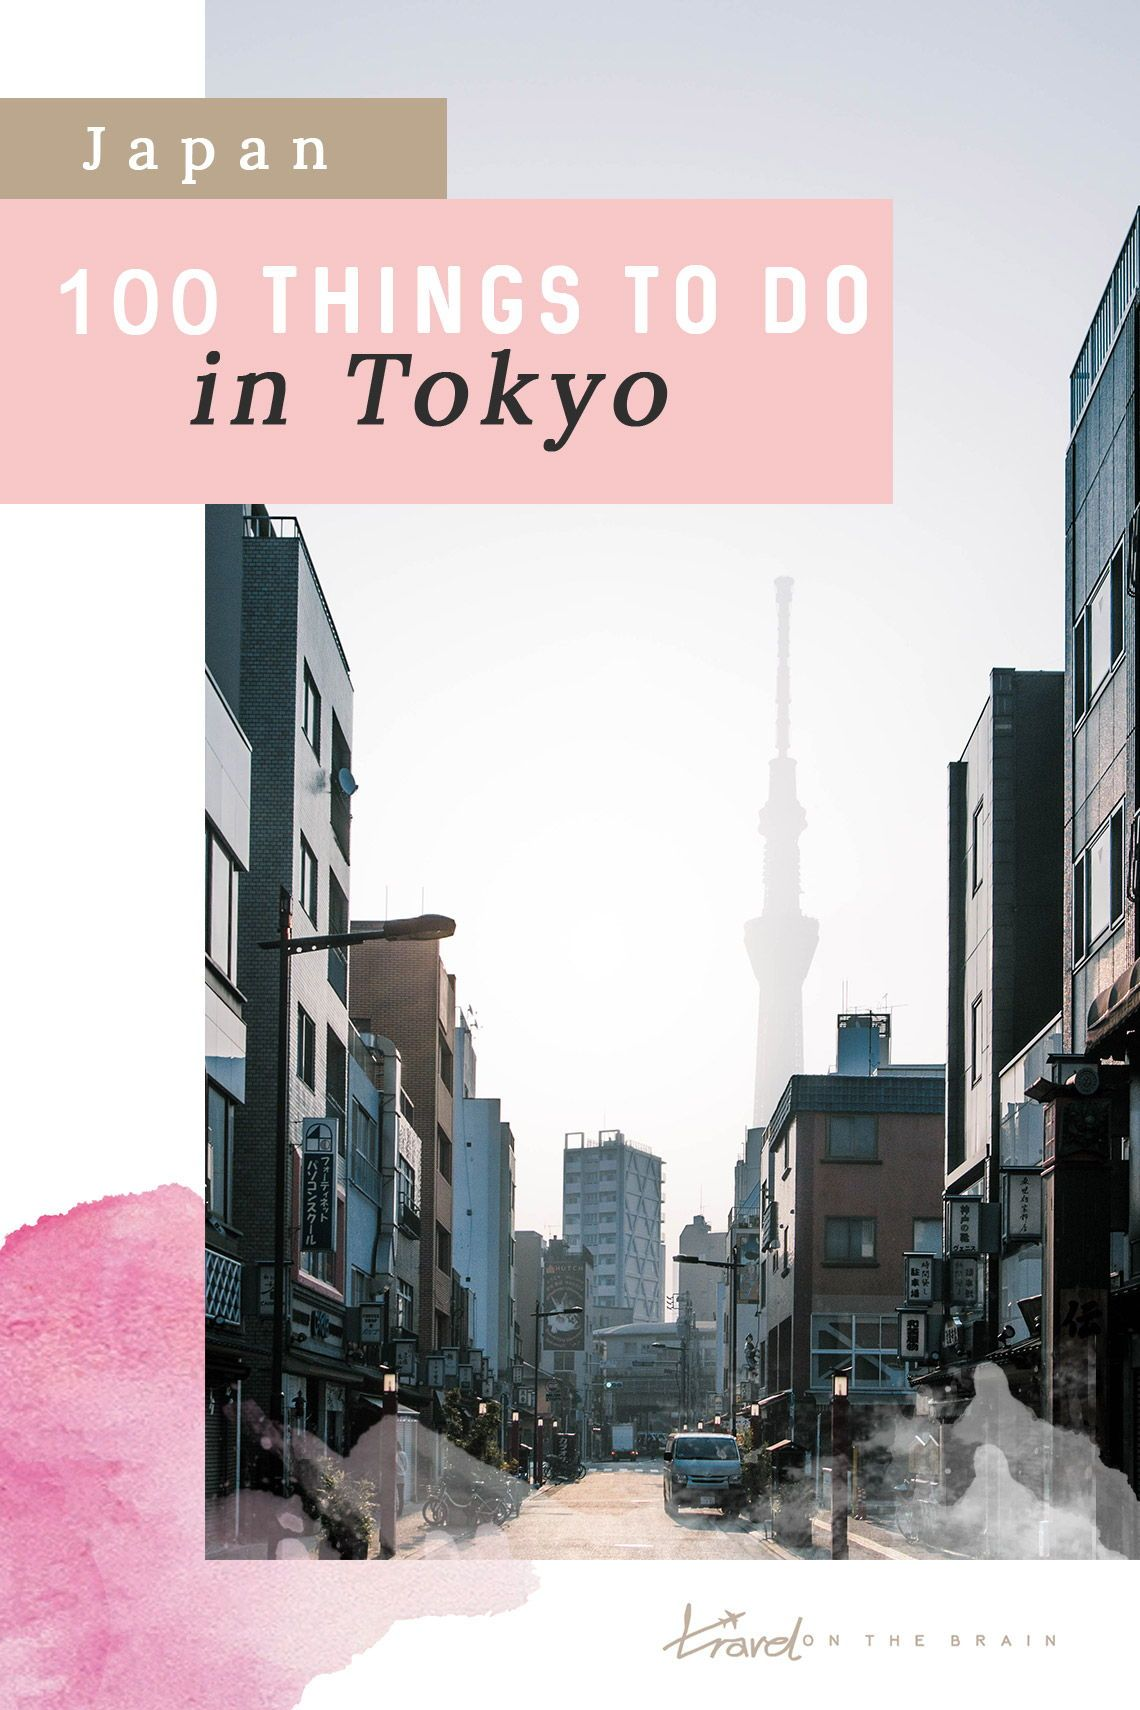 Travelling Tokyo, Japan? Here are 100 cool things for places in Tokyo you can explore and fun activities you can do. #tokyo #japan #tokyojapantravel #tokyojapan #tokyotripplanning #tokyothingstodo